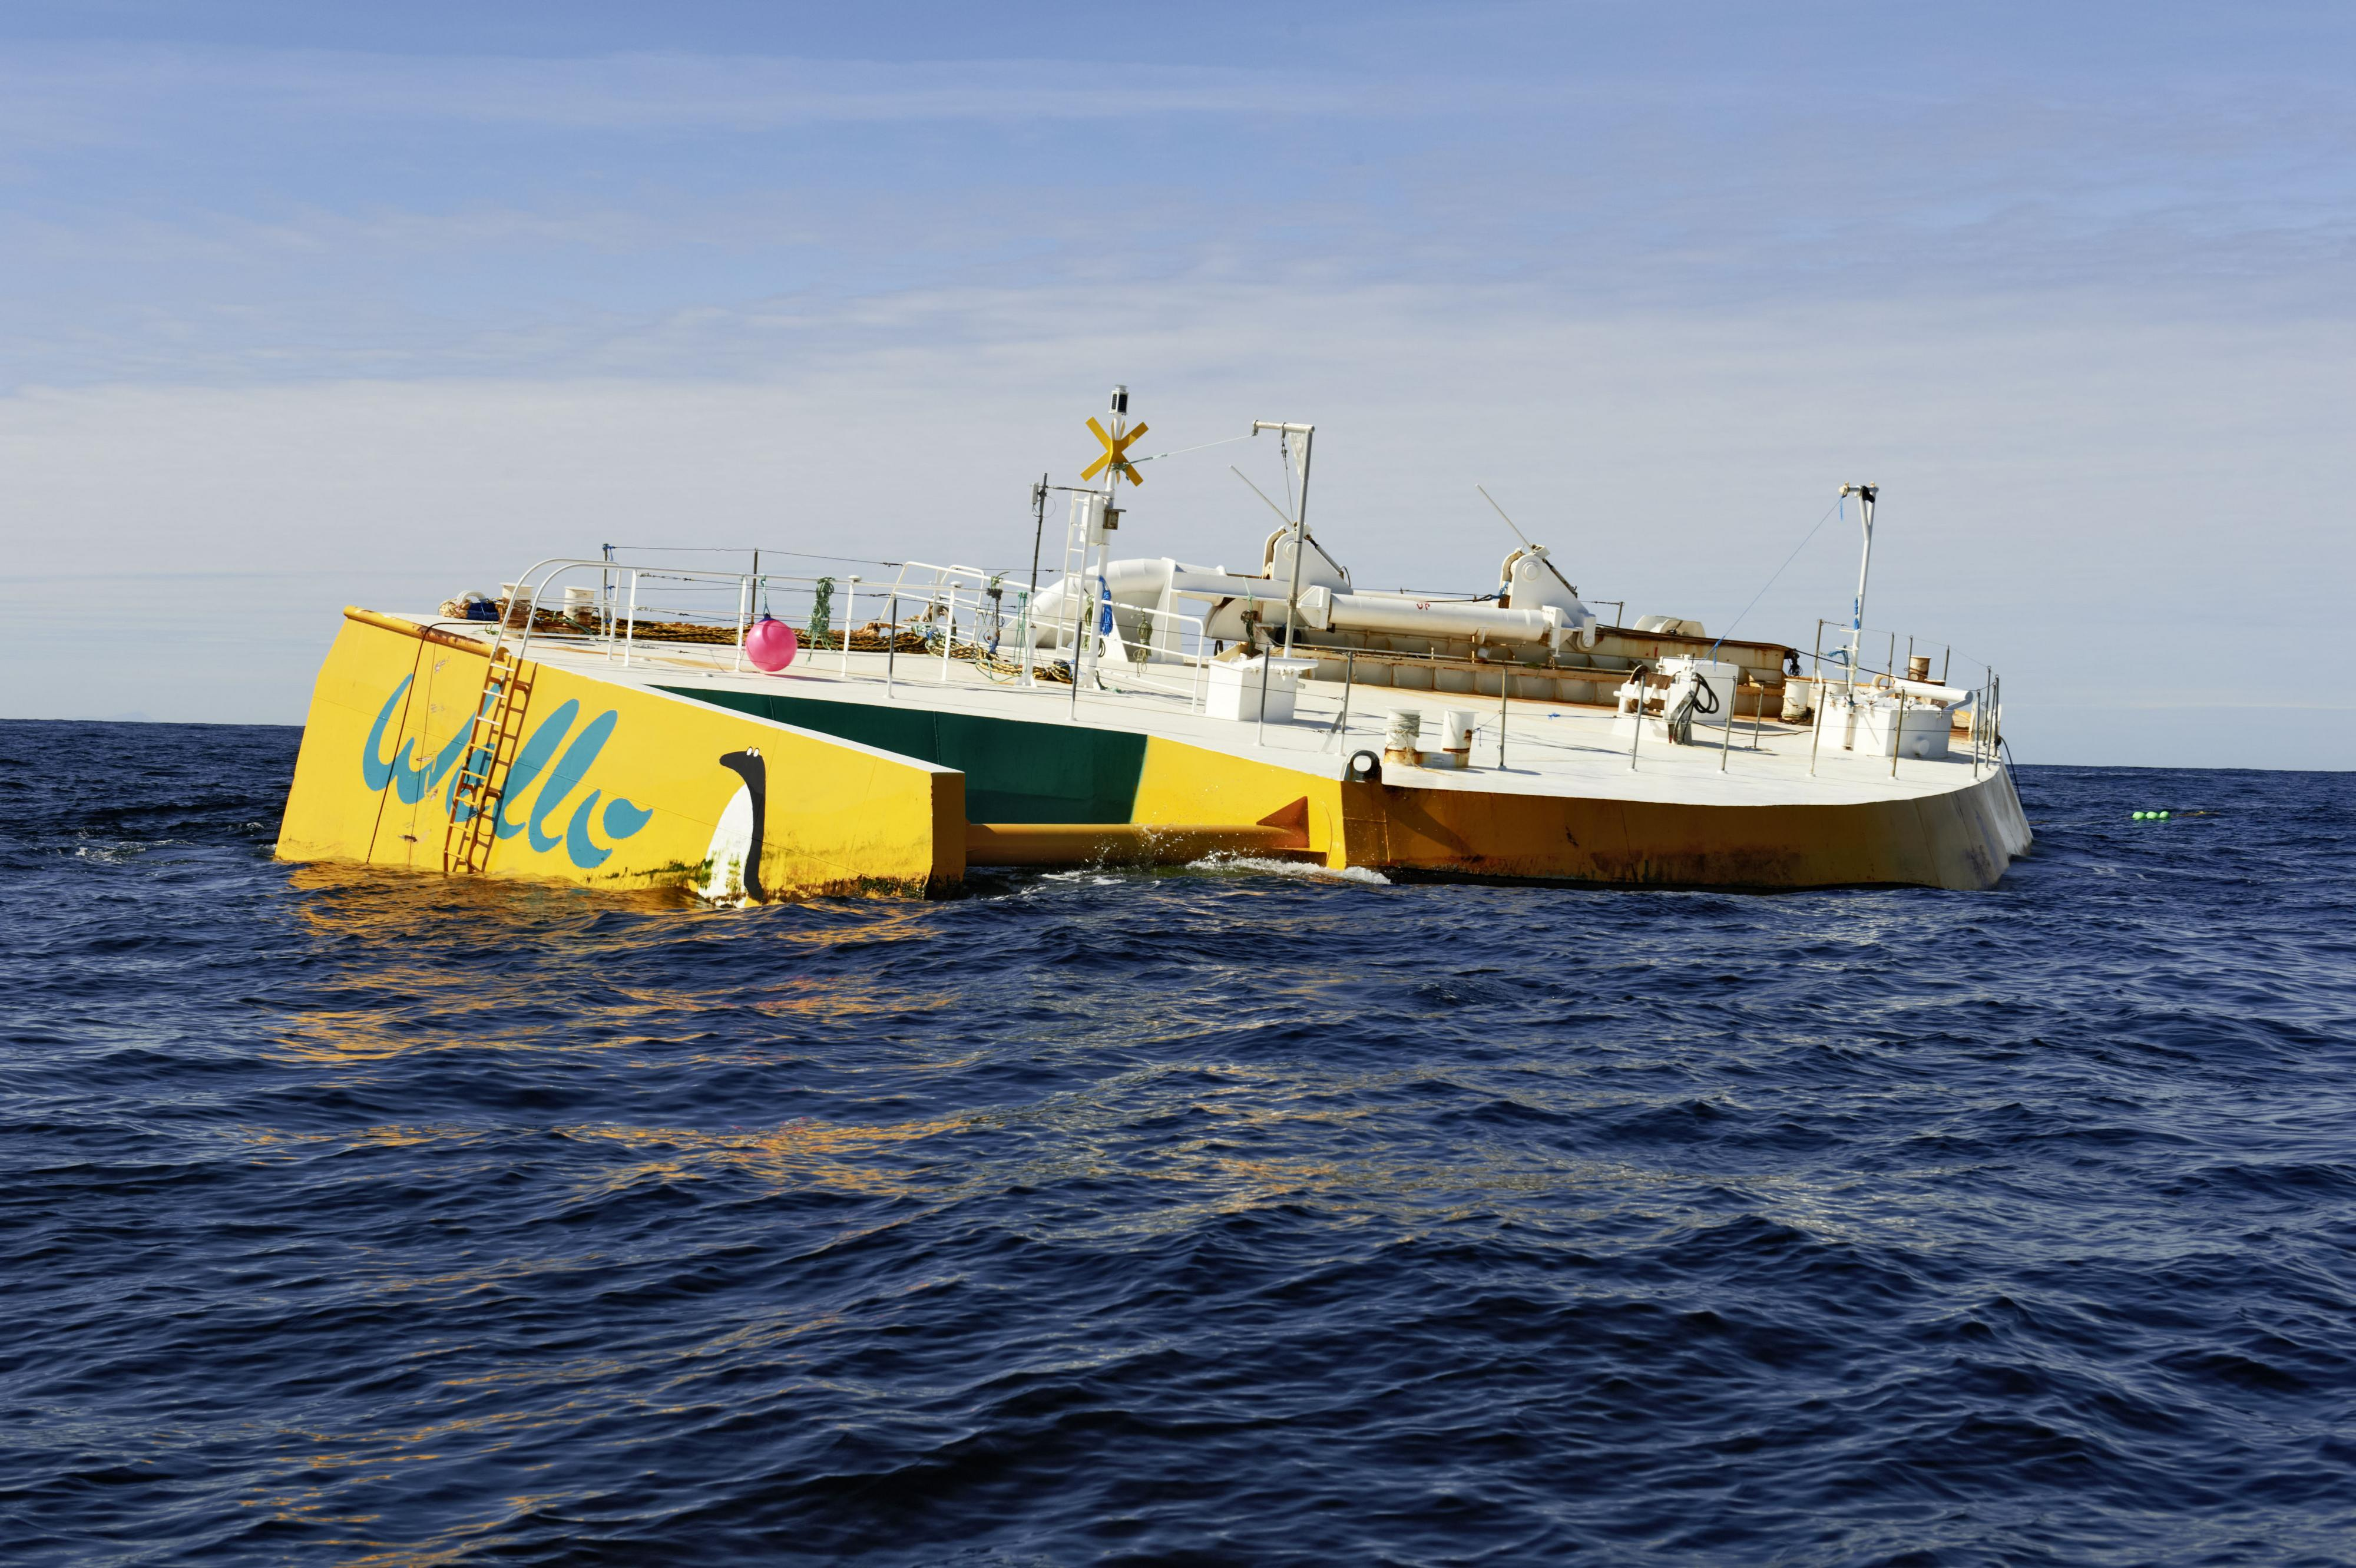 Wave energy converter Penguin in Orkney, Scotland Photo: Jan Oelker 2014